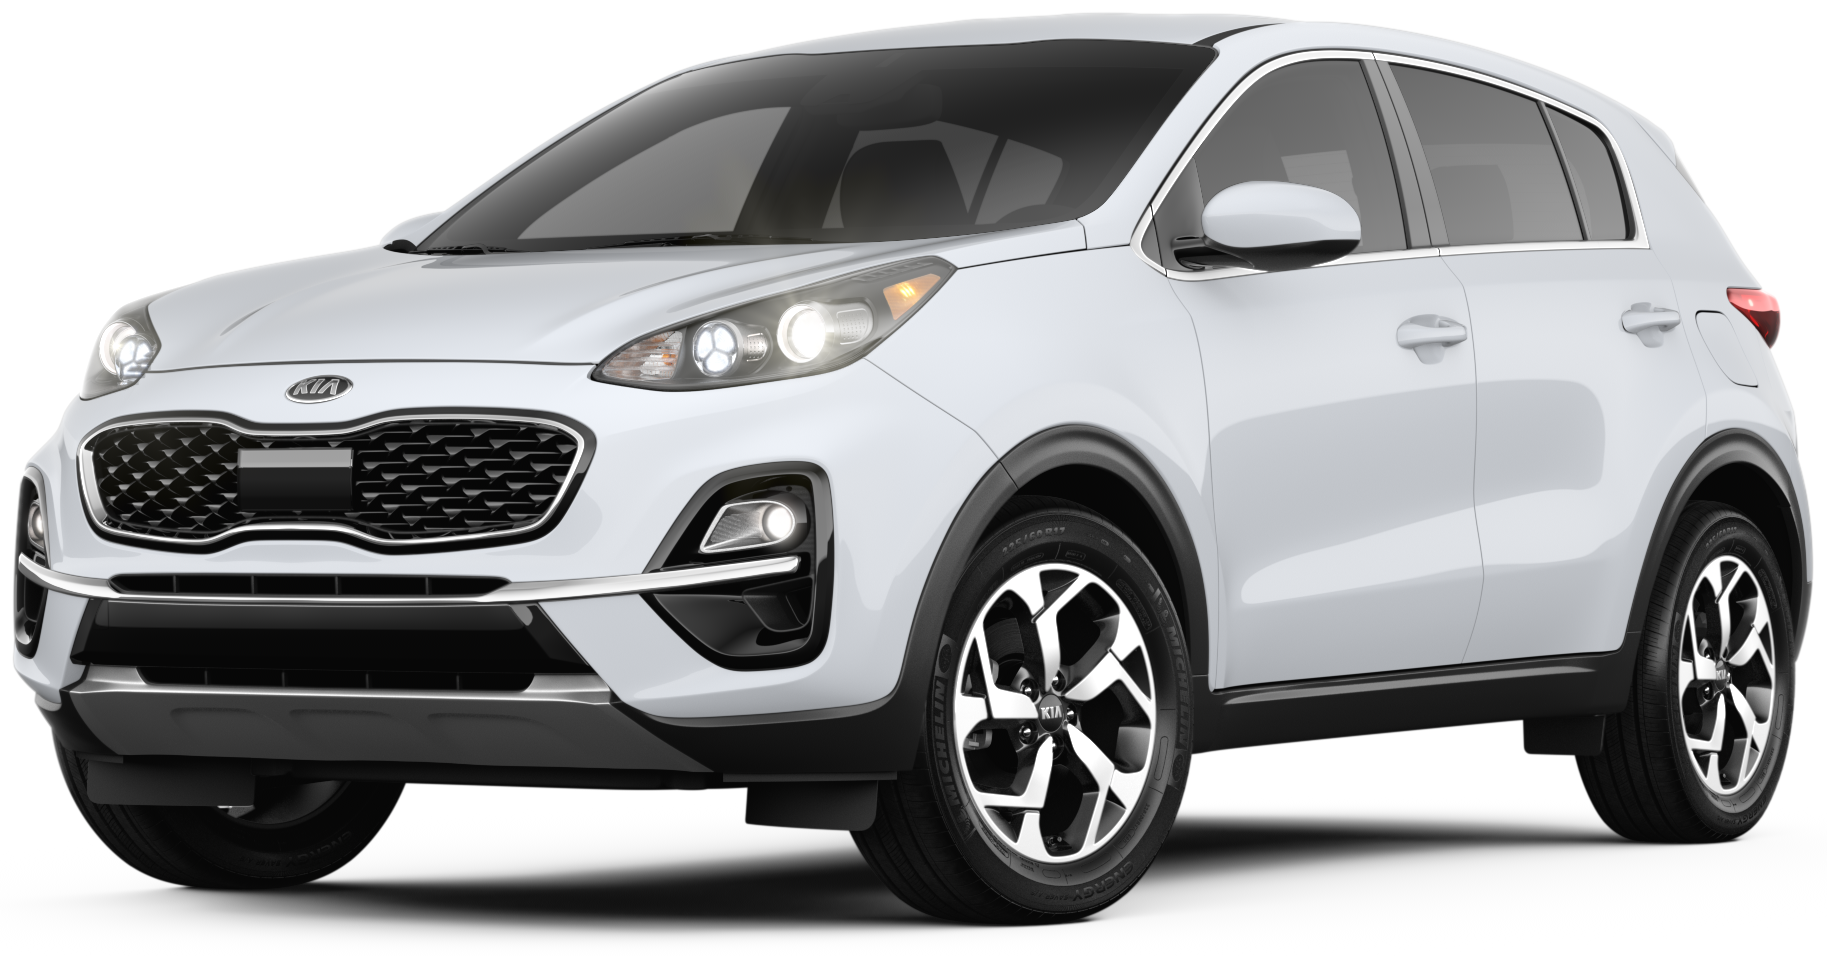 2020 Kia Sportage Incentives, Specials & Offers In West